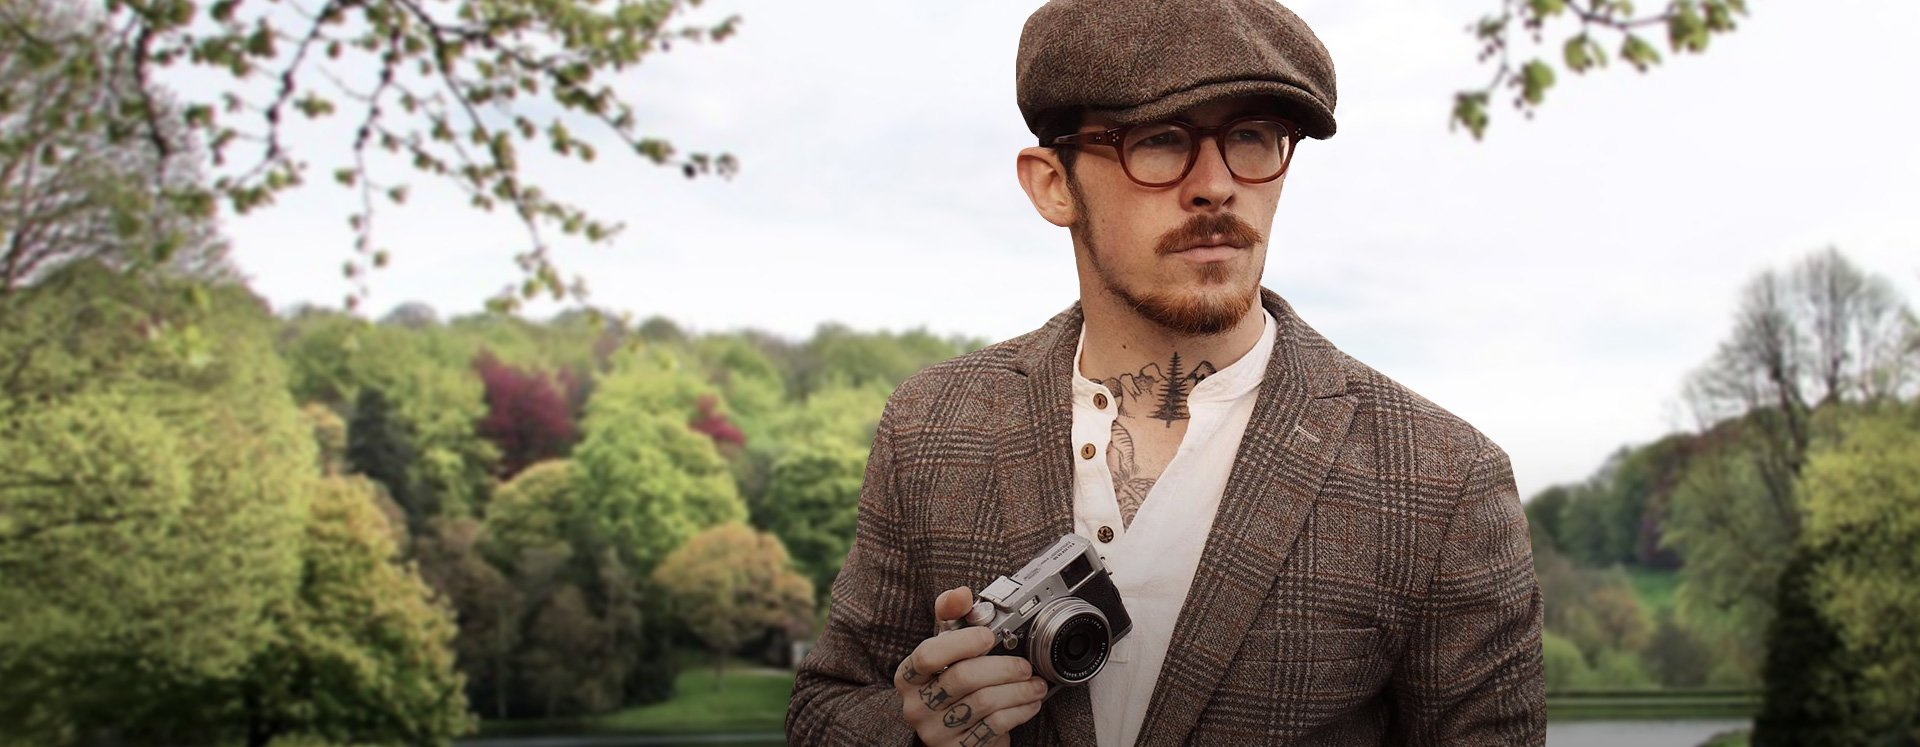 fathers day tweed outfit